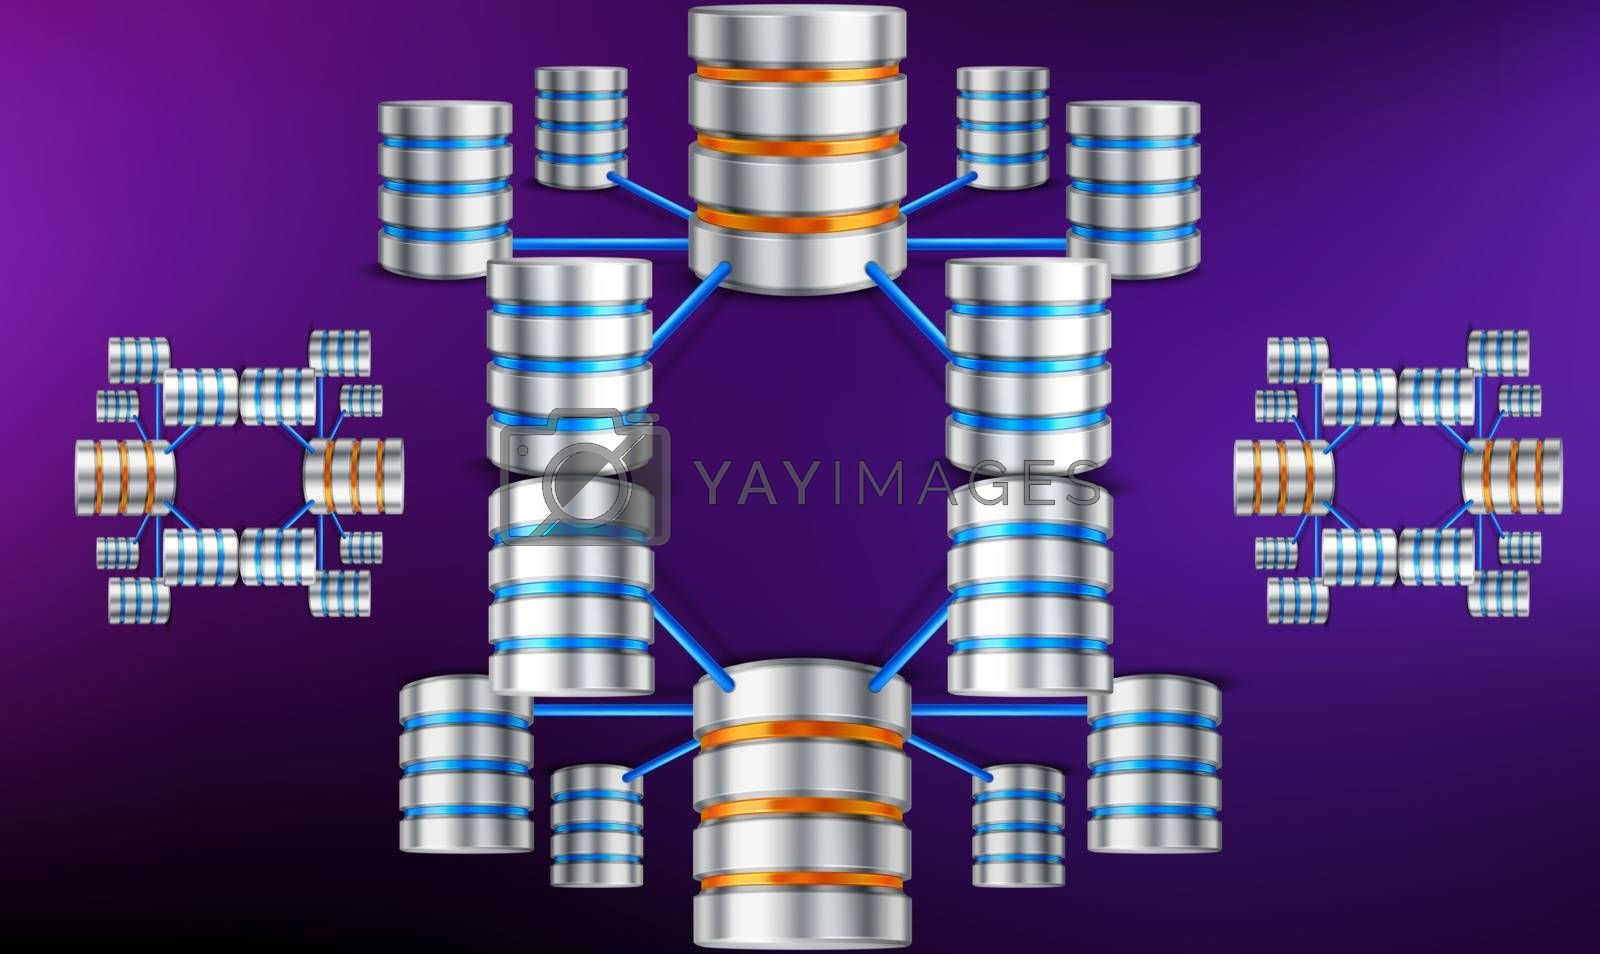 digital textile design of data security network on abstract background